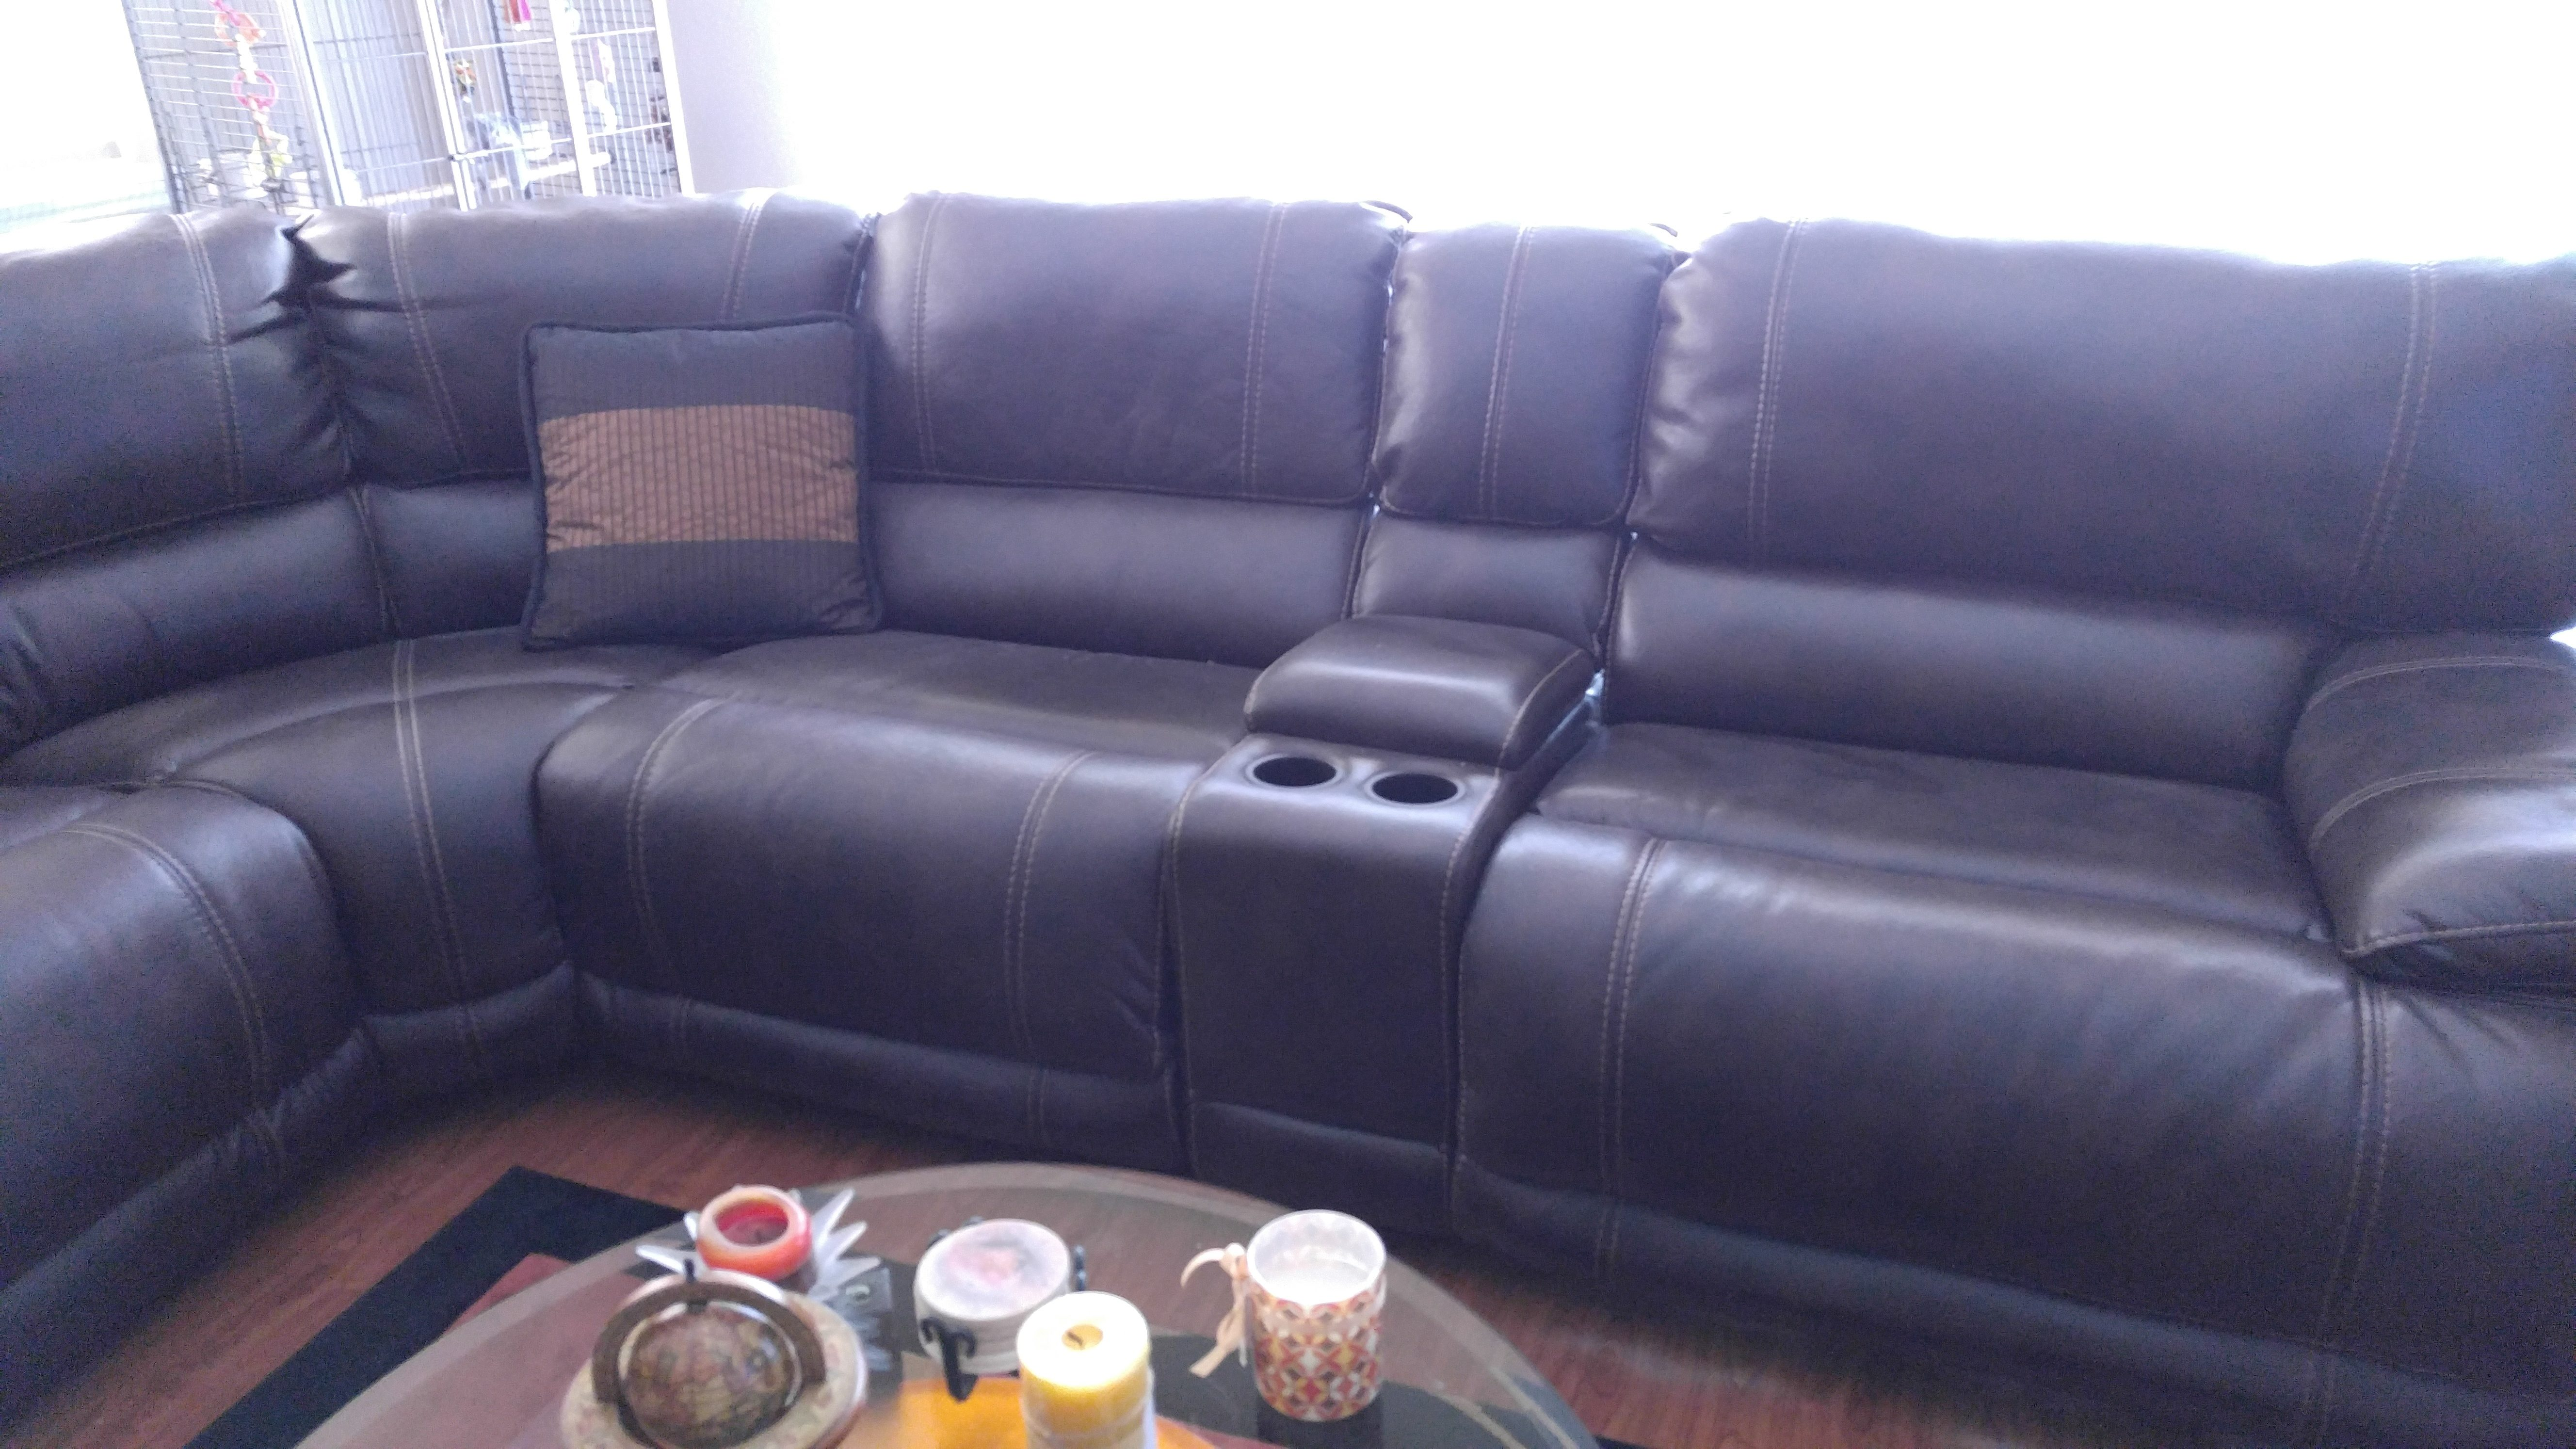 3 years ago i remodeled my home and purchased a sectional from them it was supposed to be polyester not bonded or leather been there done that